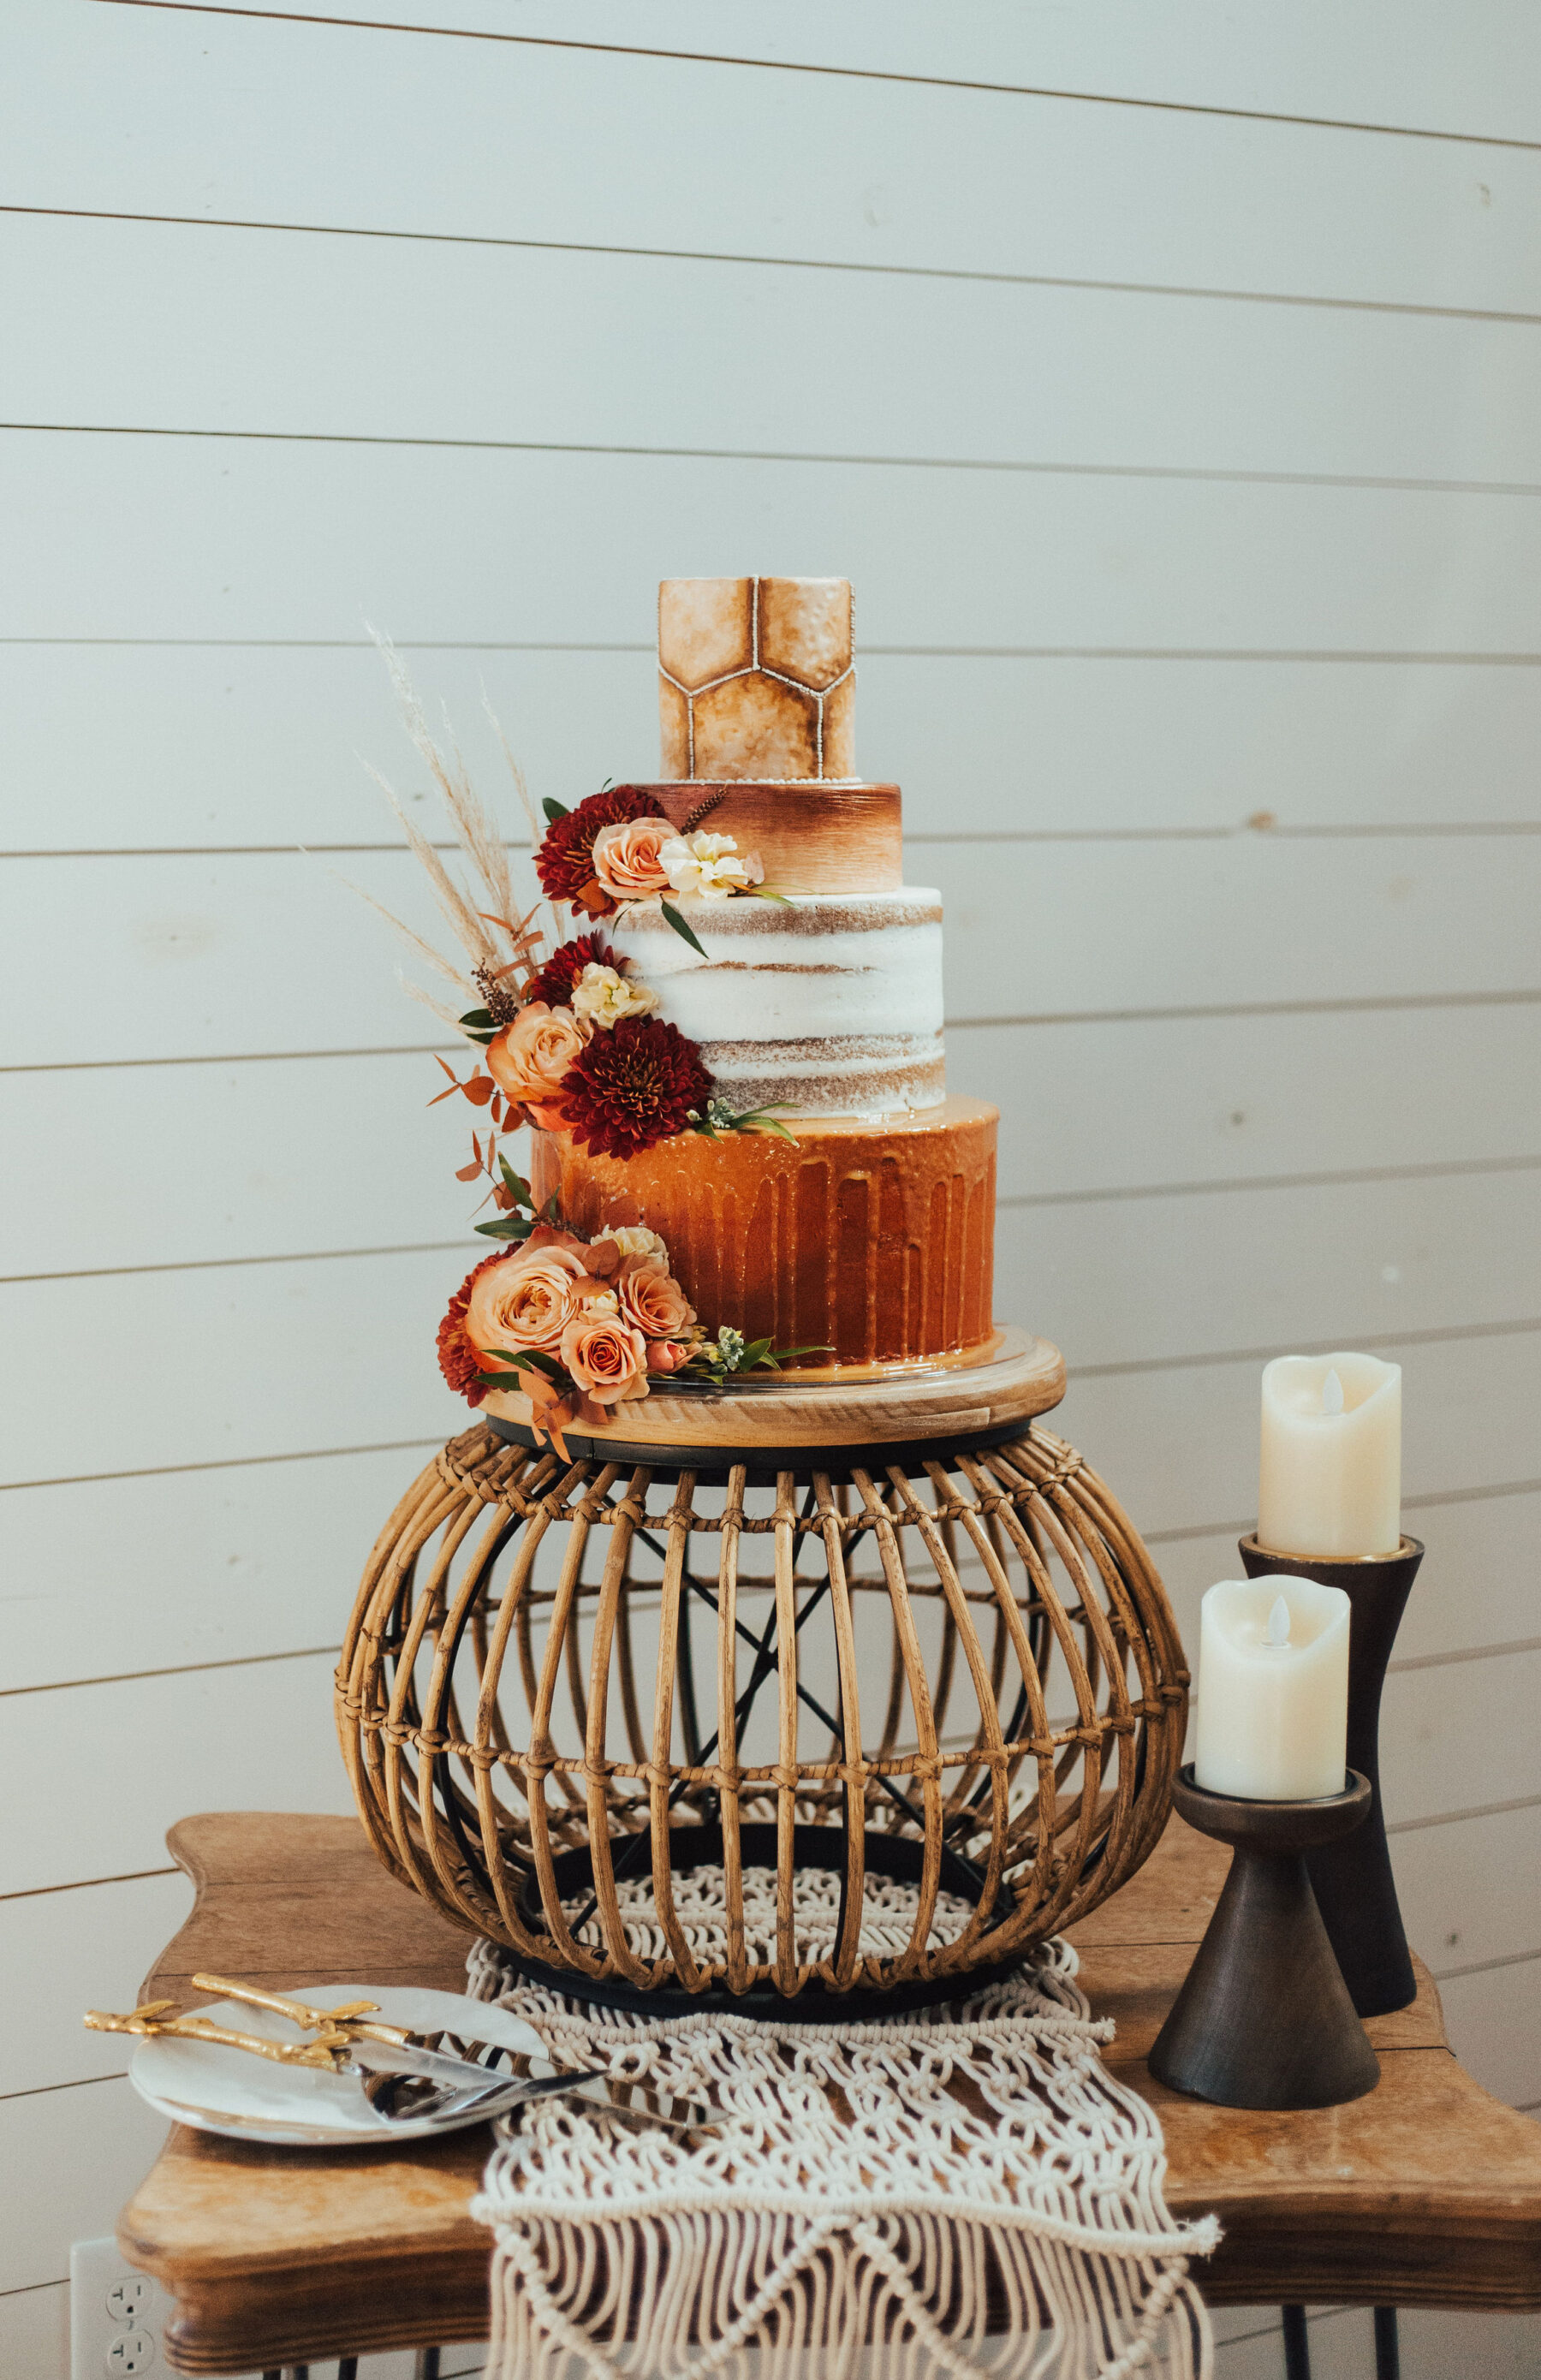 Southern Charm wedding cake design: Bright Bohemian Photo Shoot from Ina J Designs